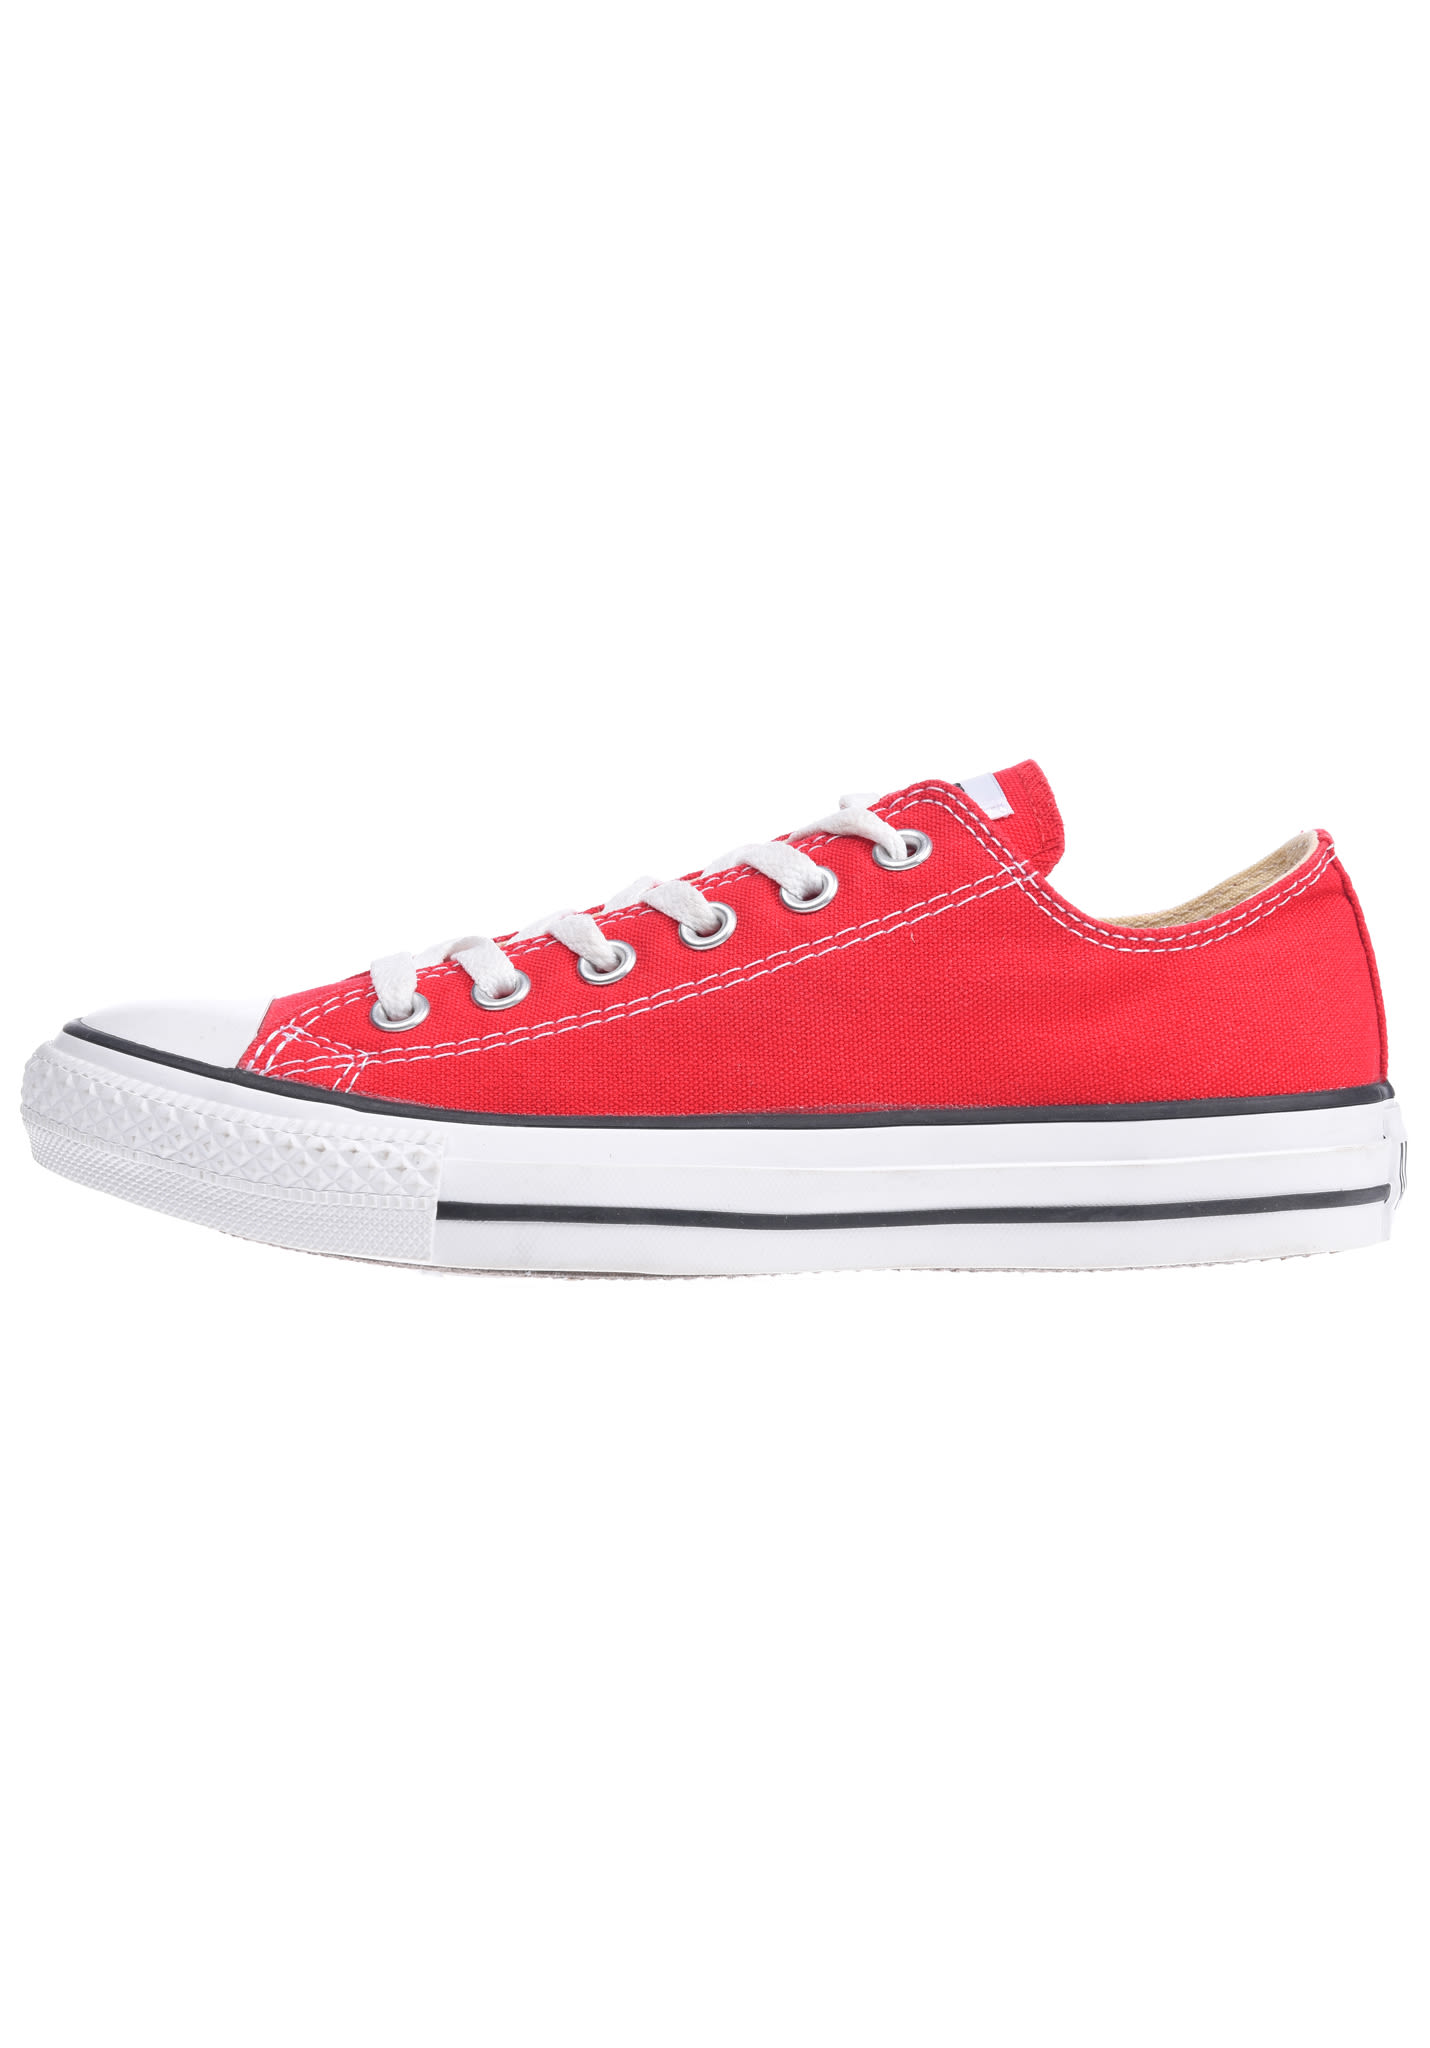 04212749083c8 Converse All Star Ox - Sneakers - Red - Planet Sports